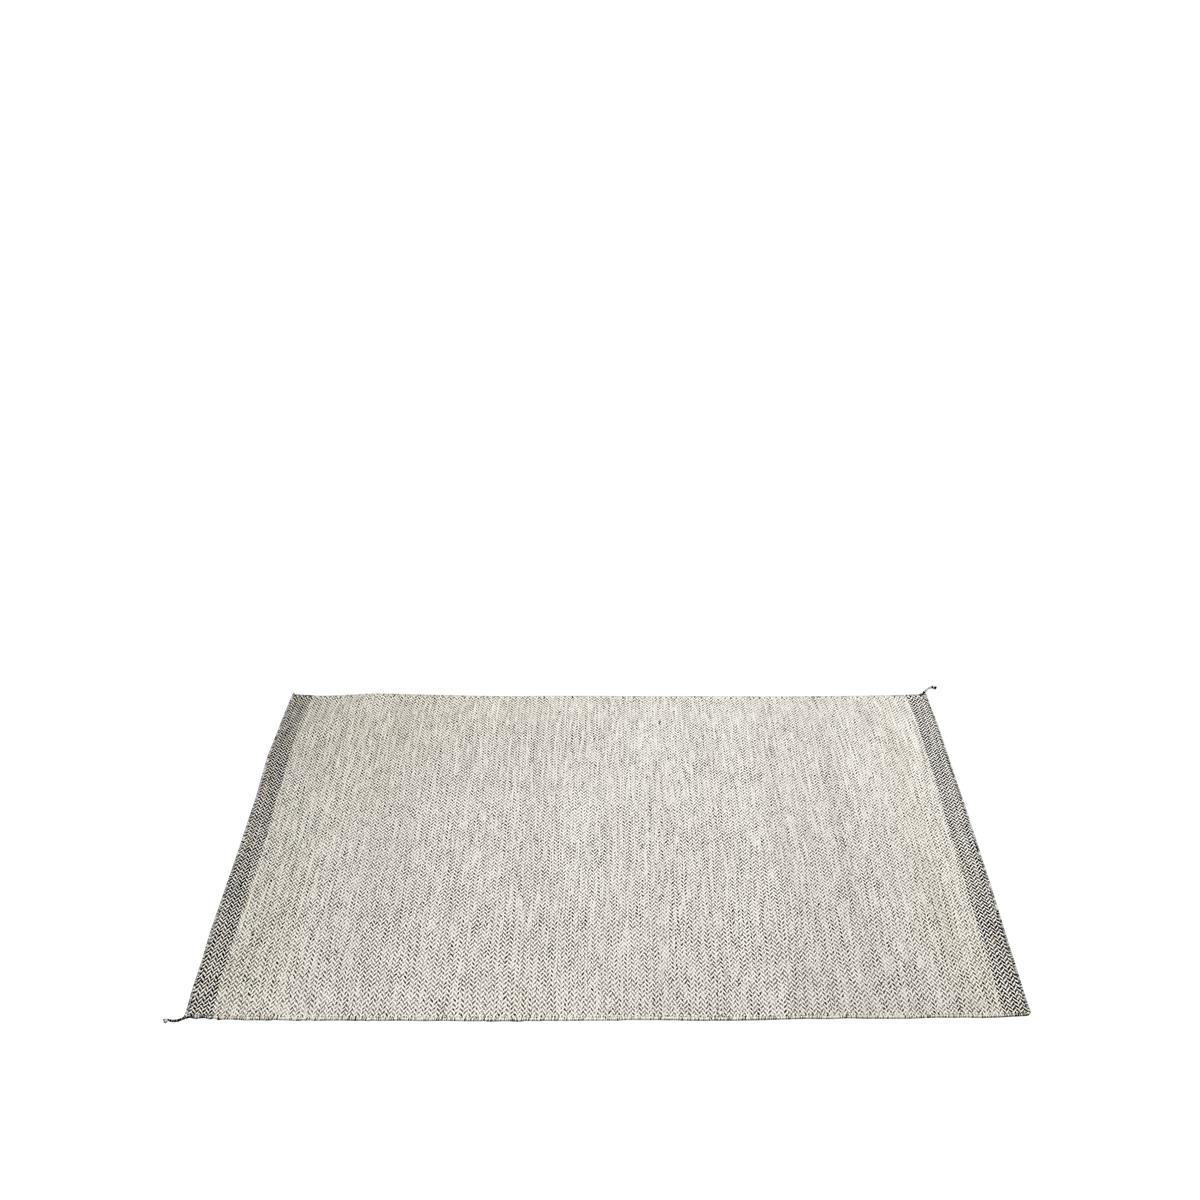 Ply Rug i 170 X 240 cm, Off-white